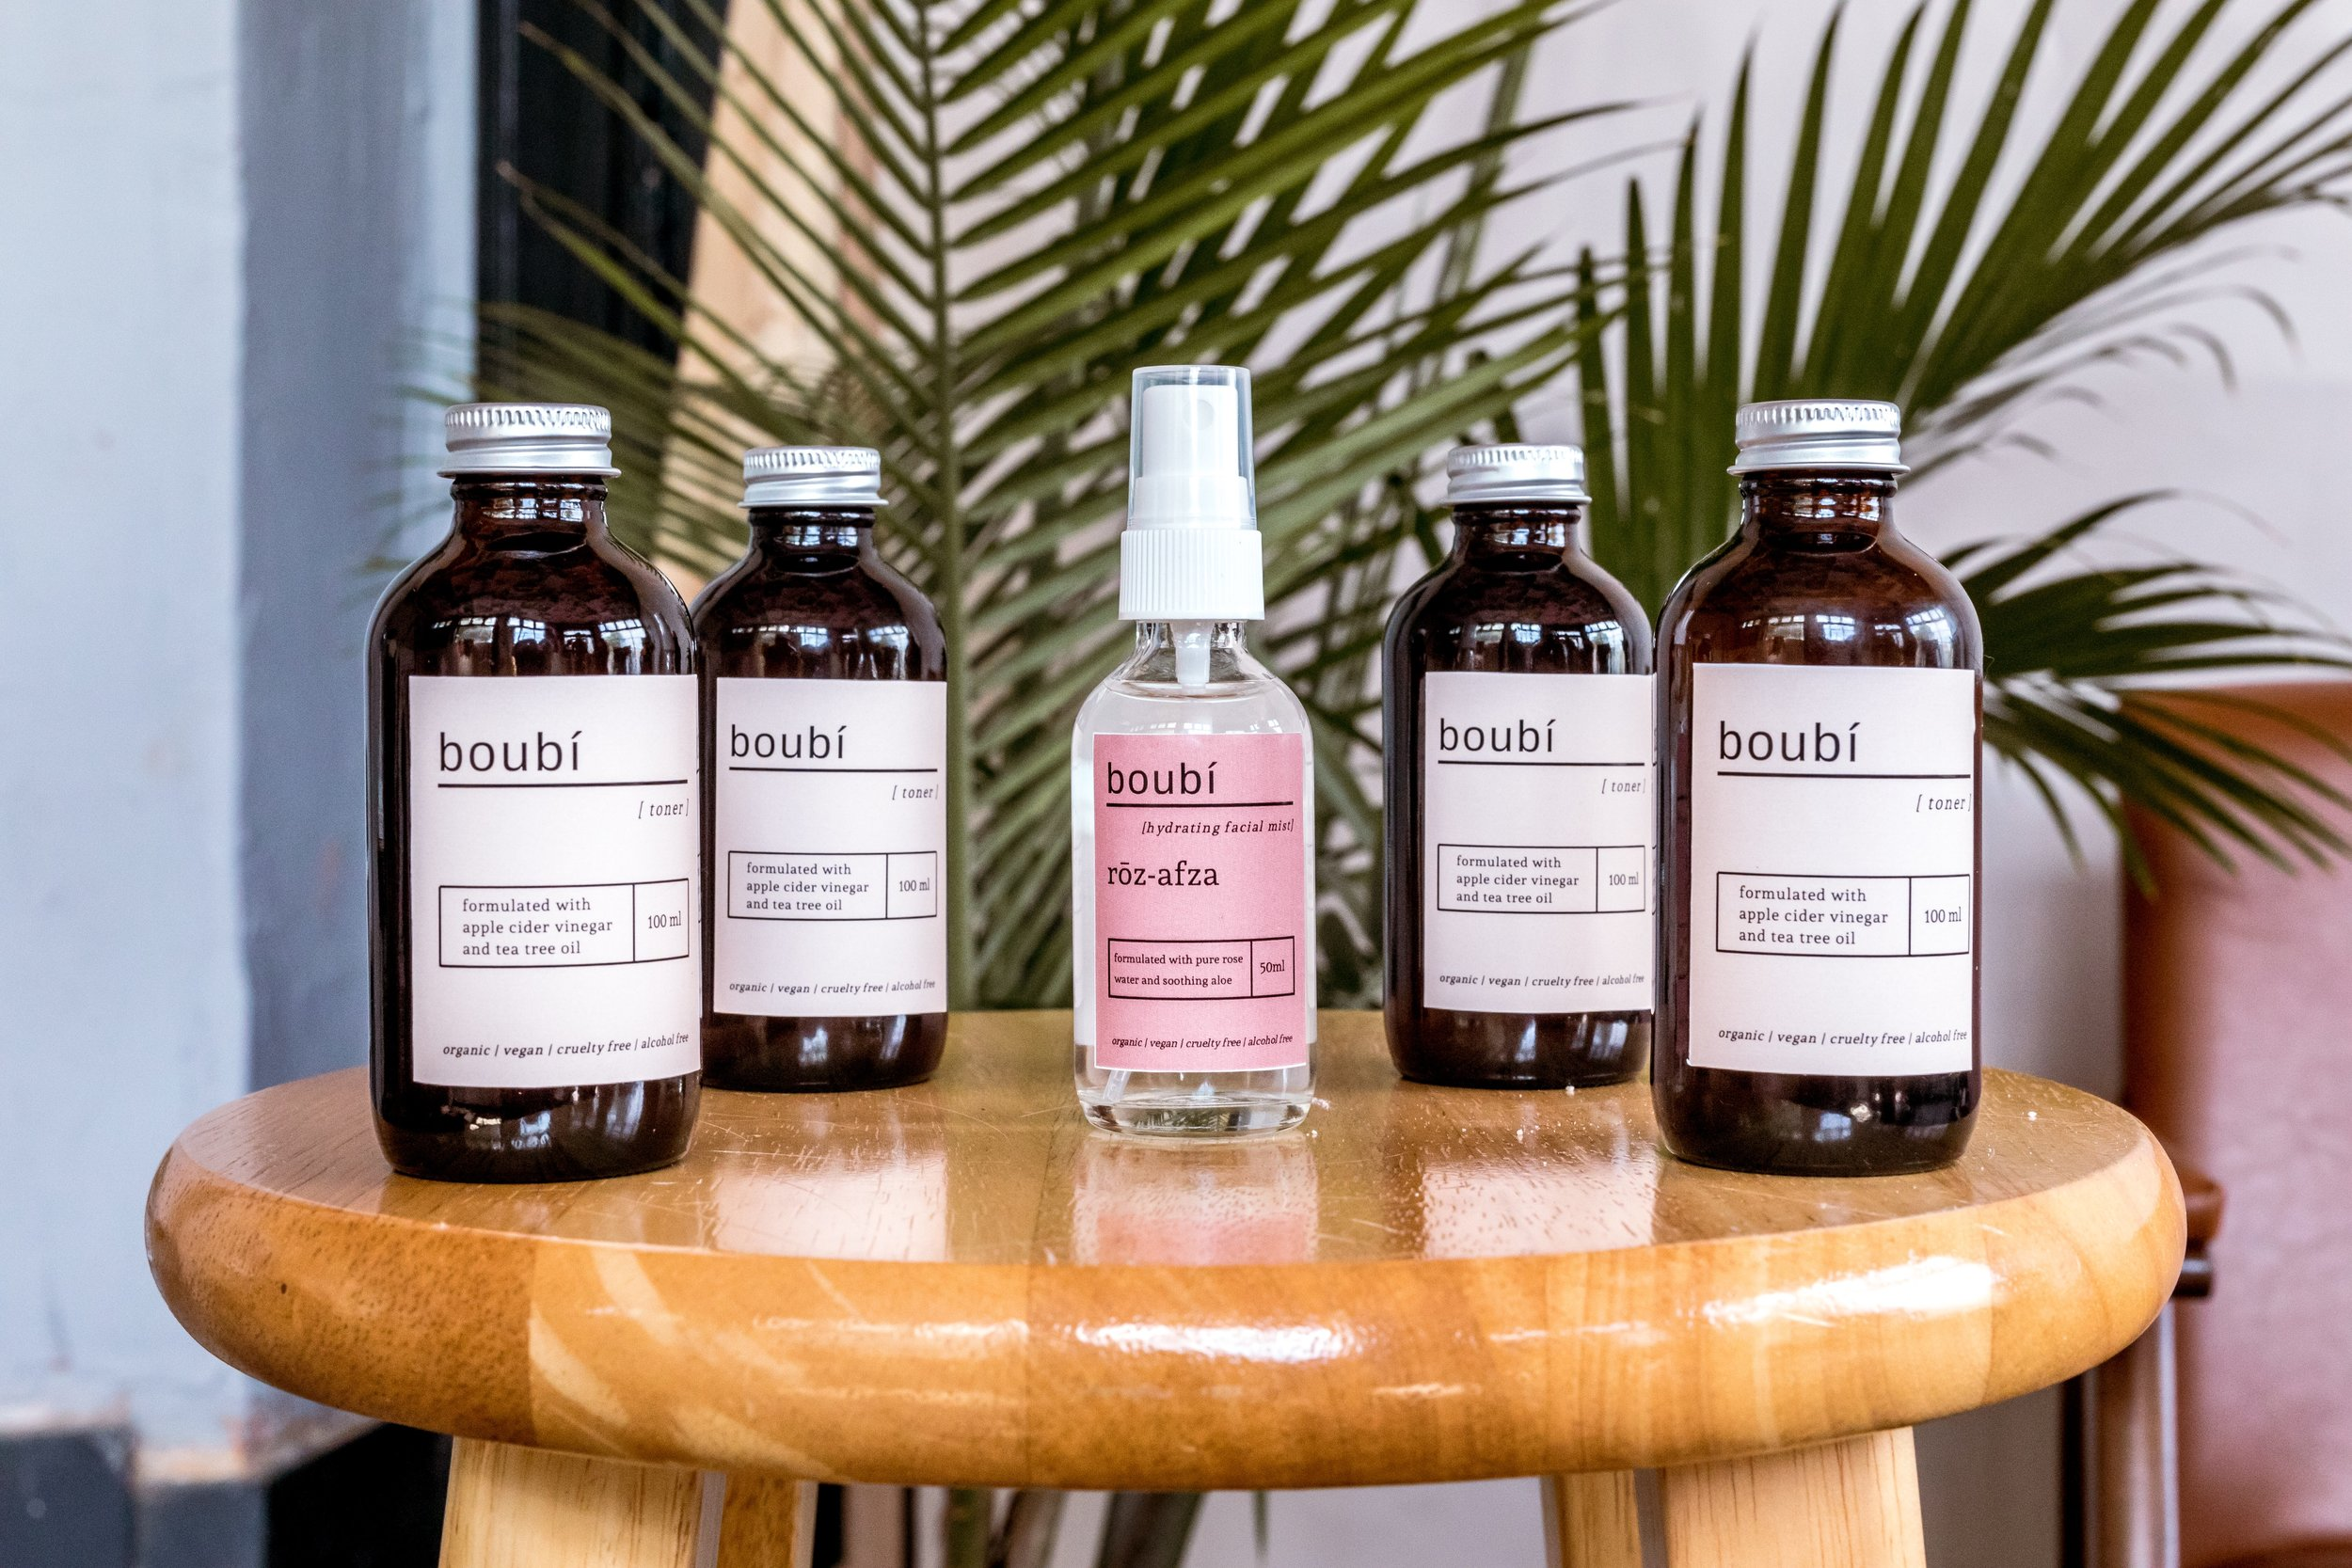 Boubí product line switching to glass bottles to reduce plastic waste.